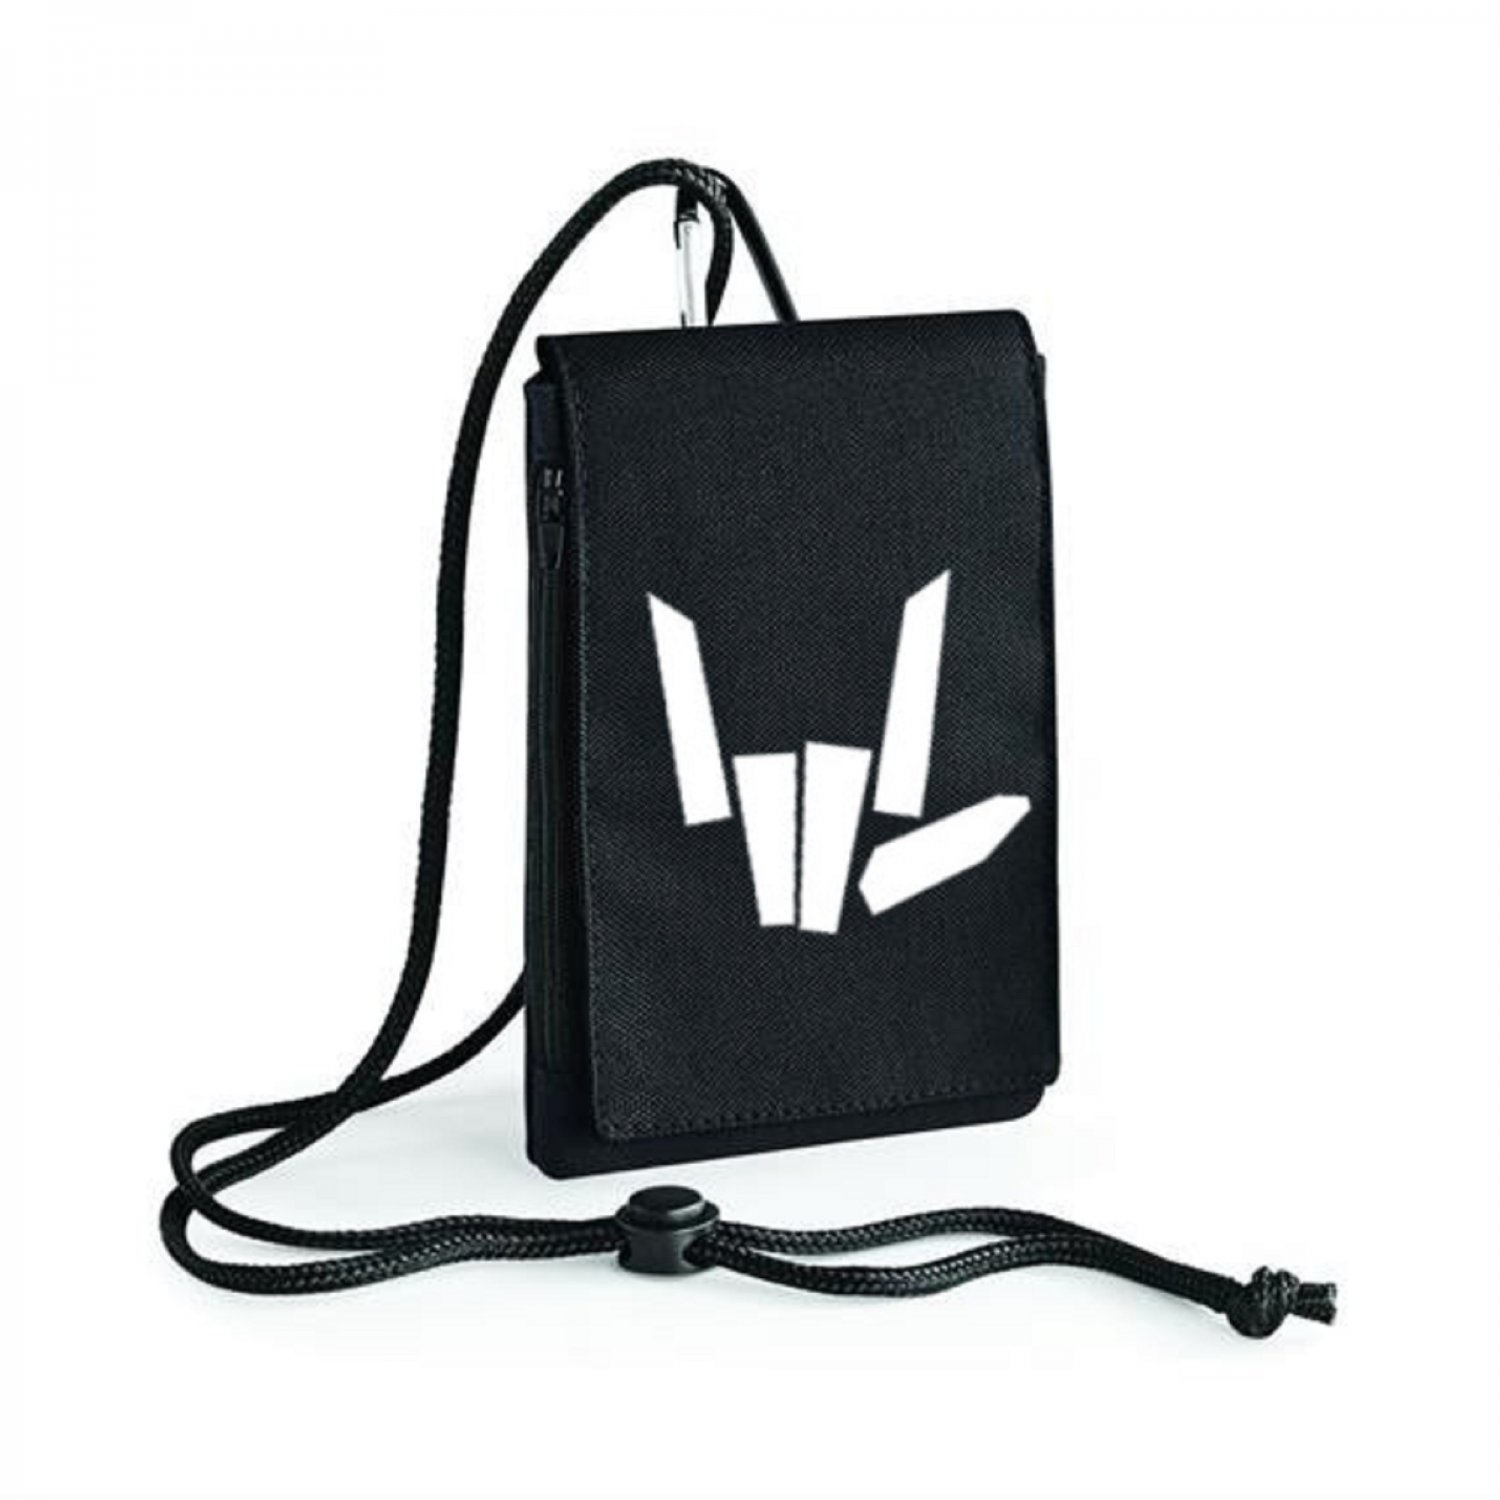 Share the Love Inspired Bagbase Phone Pouch